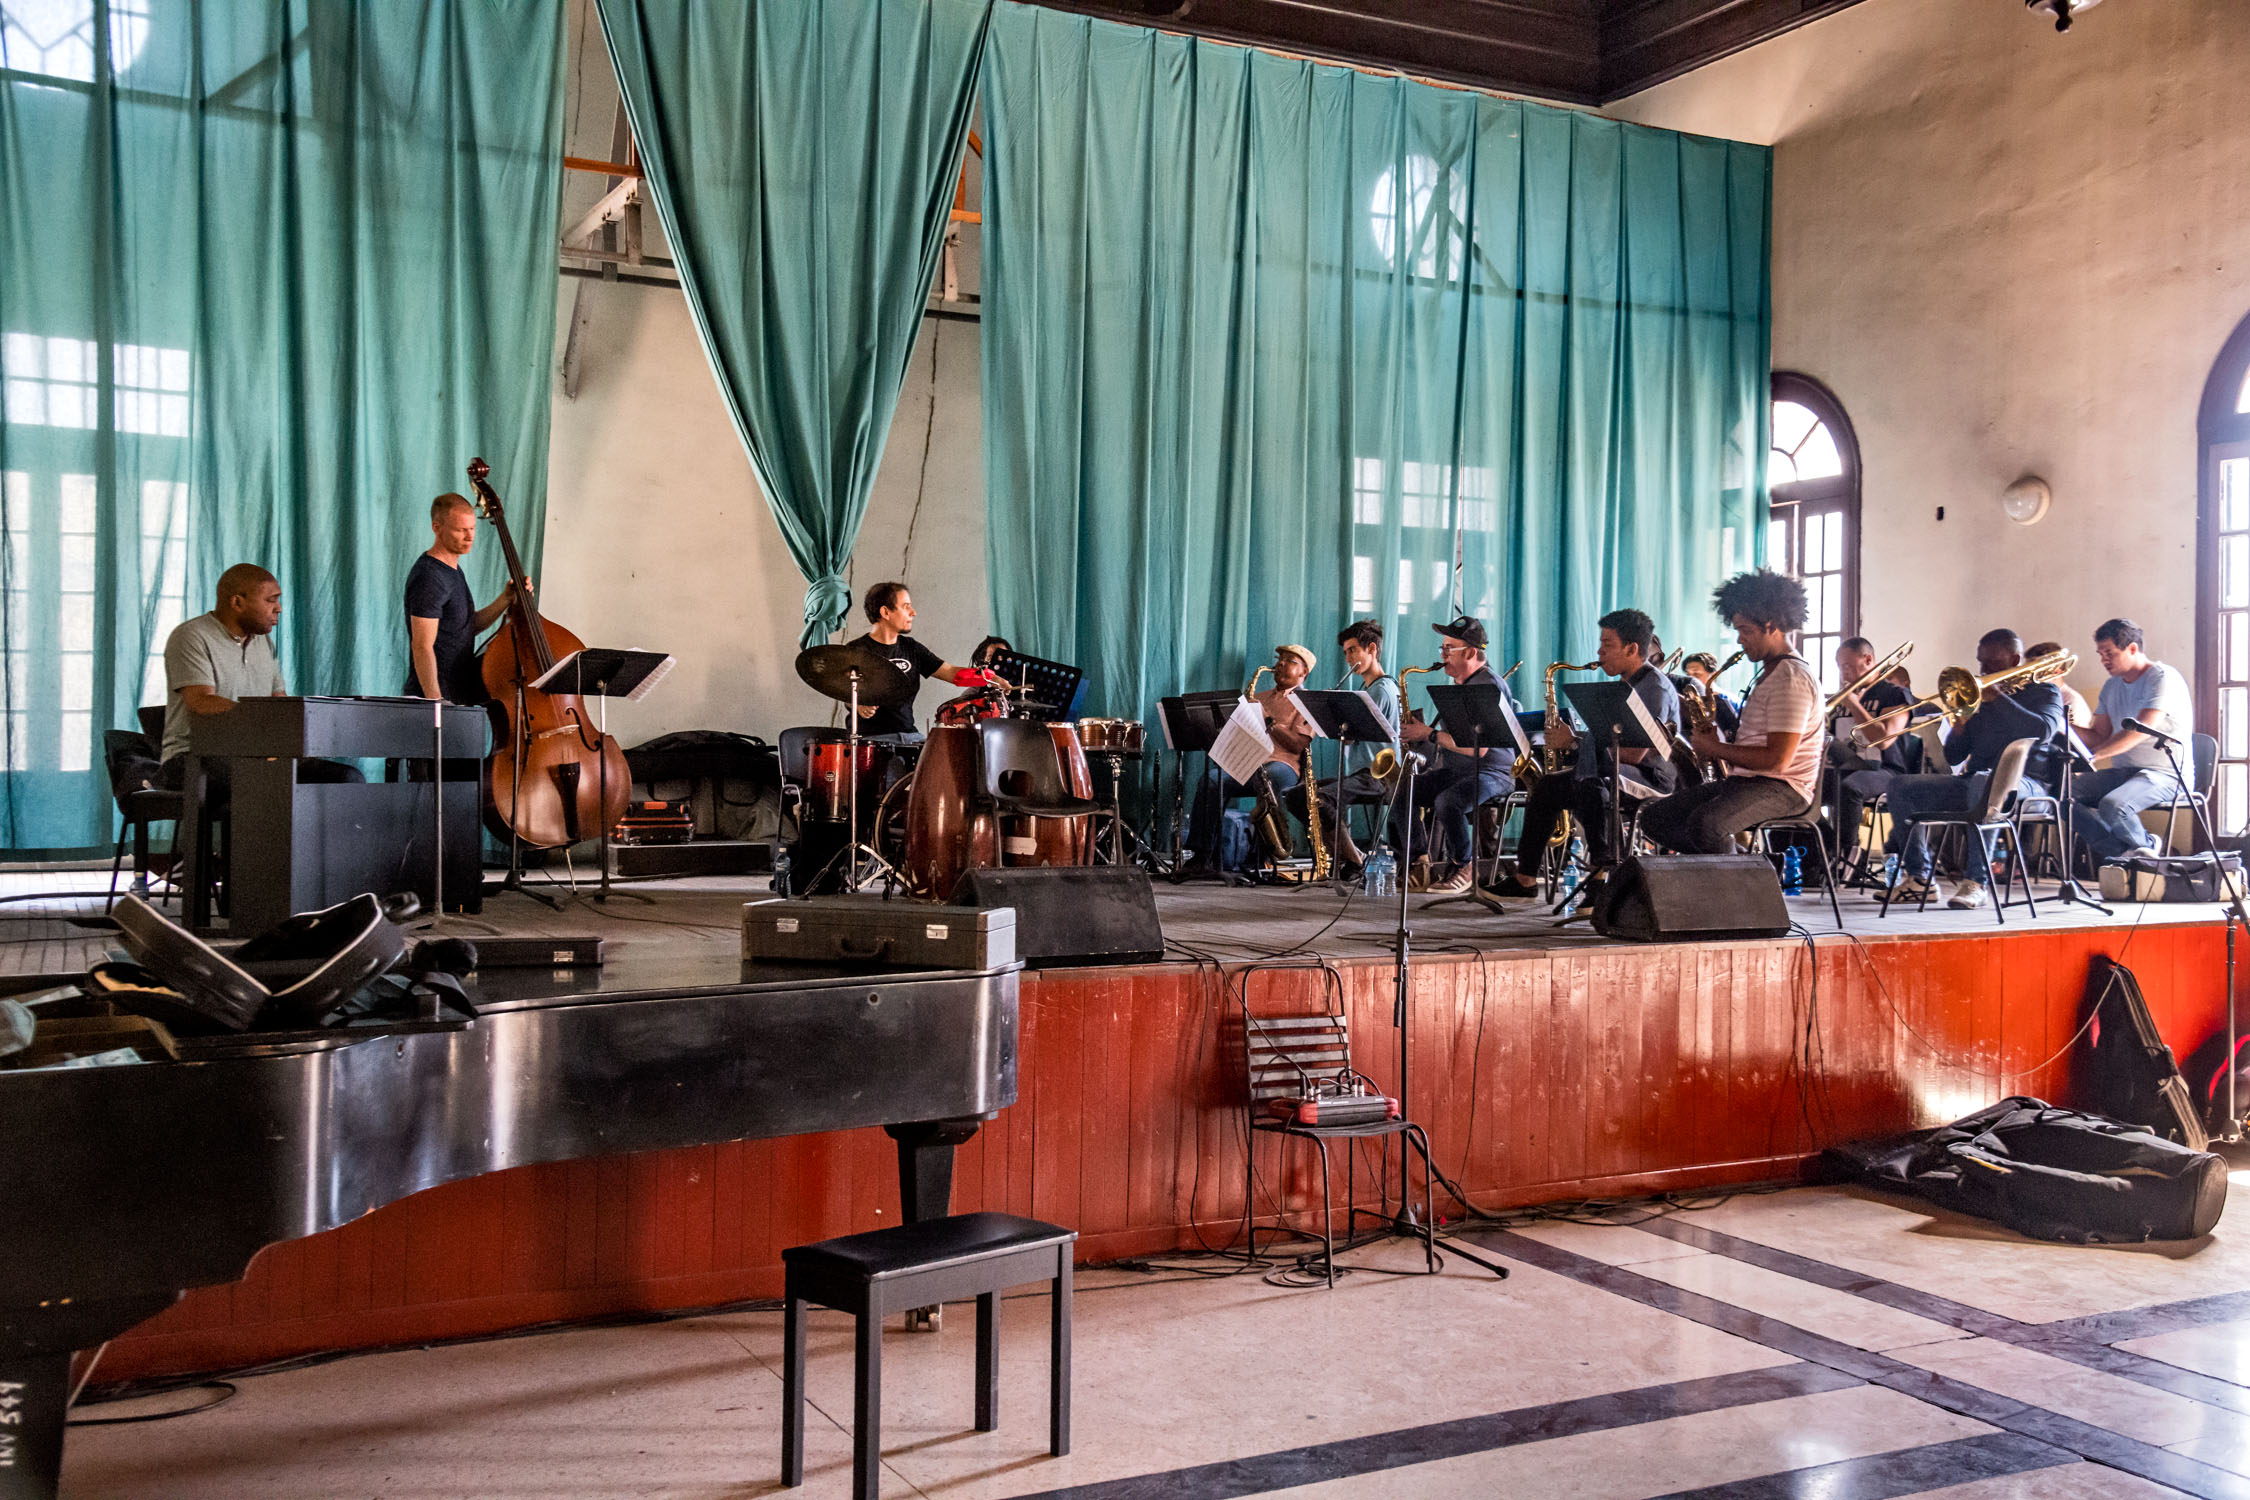 Dafnis Prieto Big Band rehearsal at Amadeo Roldan Conservatory, Havana, Cuba, January 2019 (Photo by David Garten)